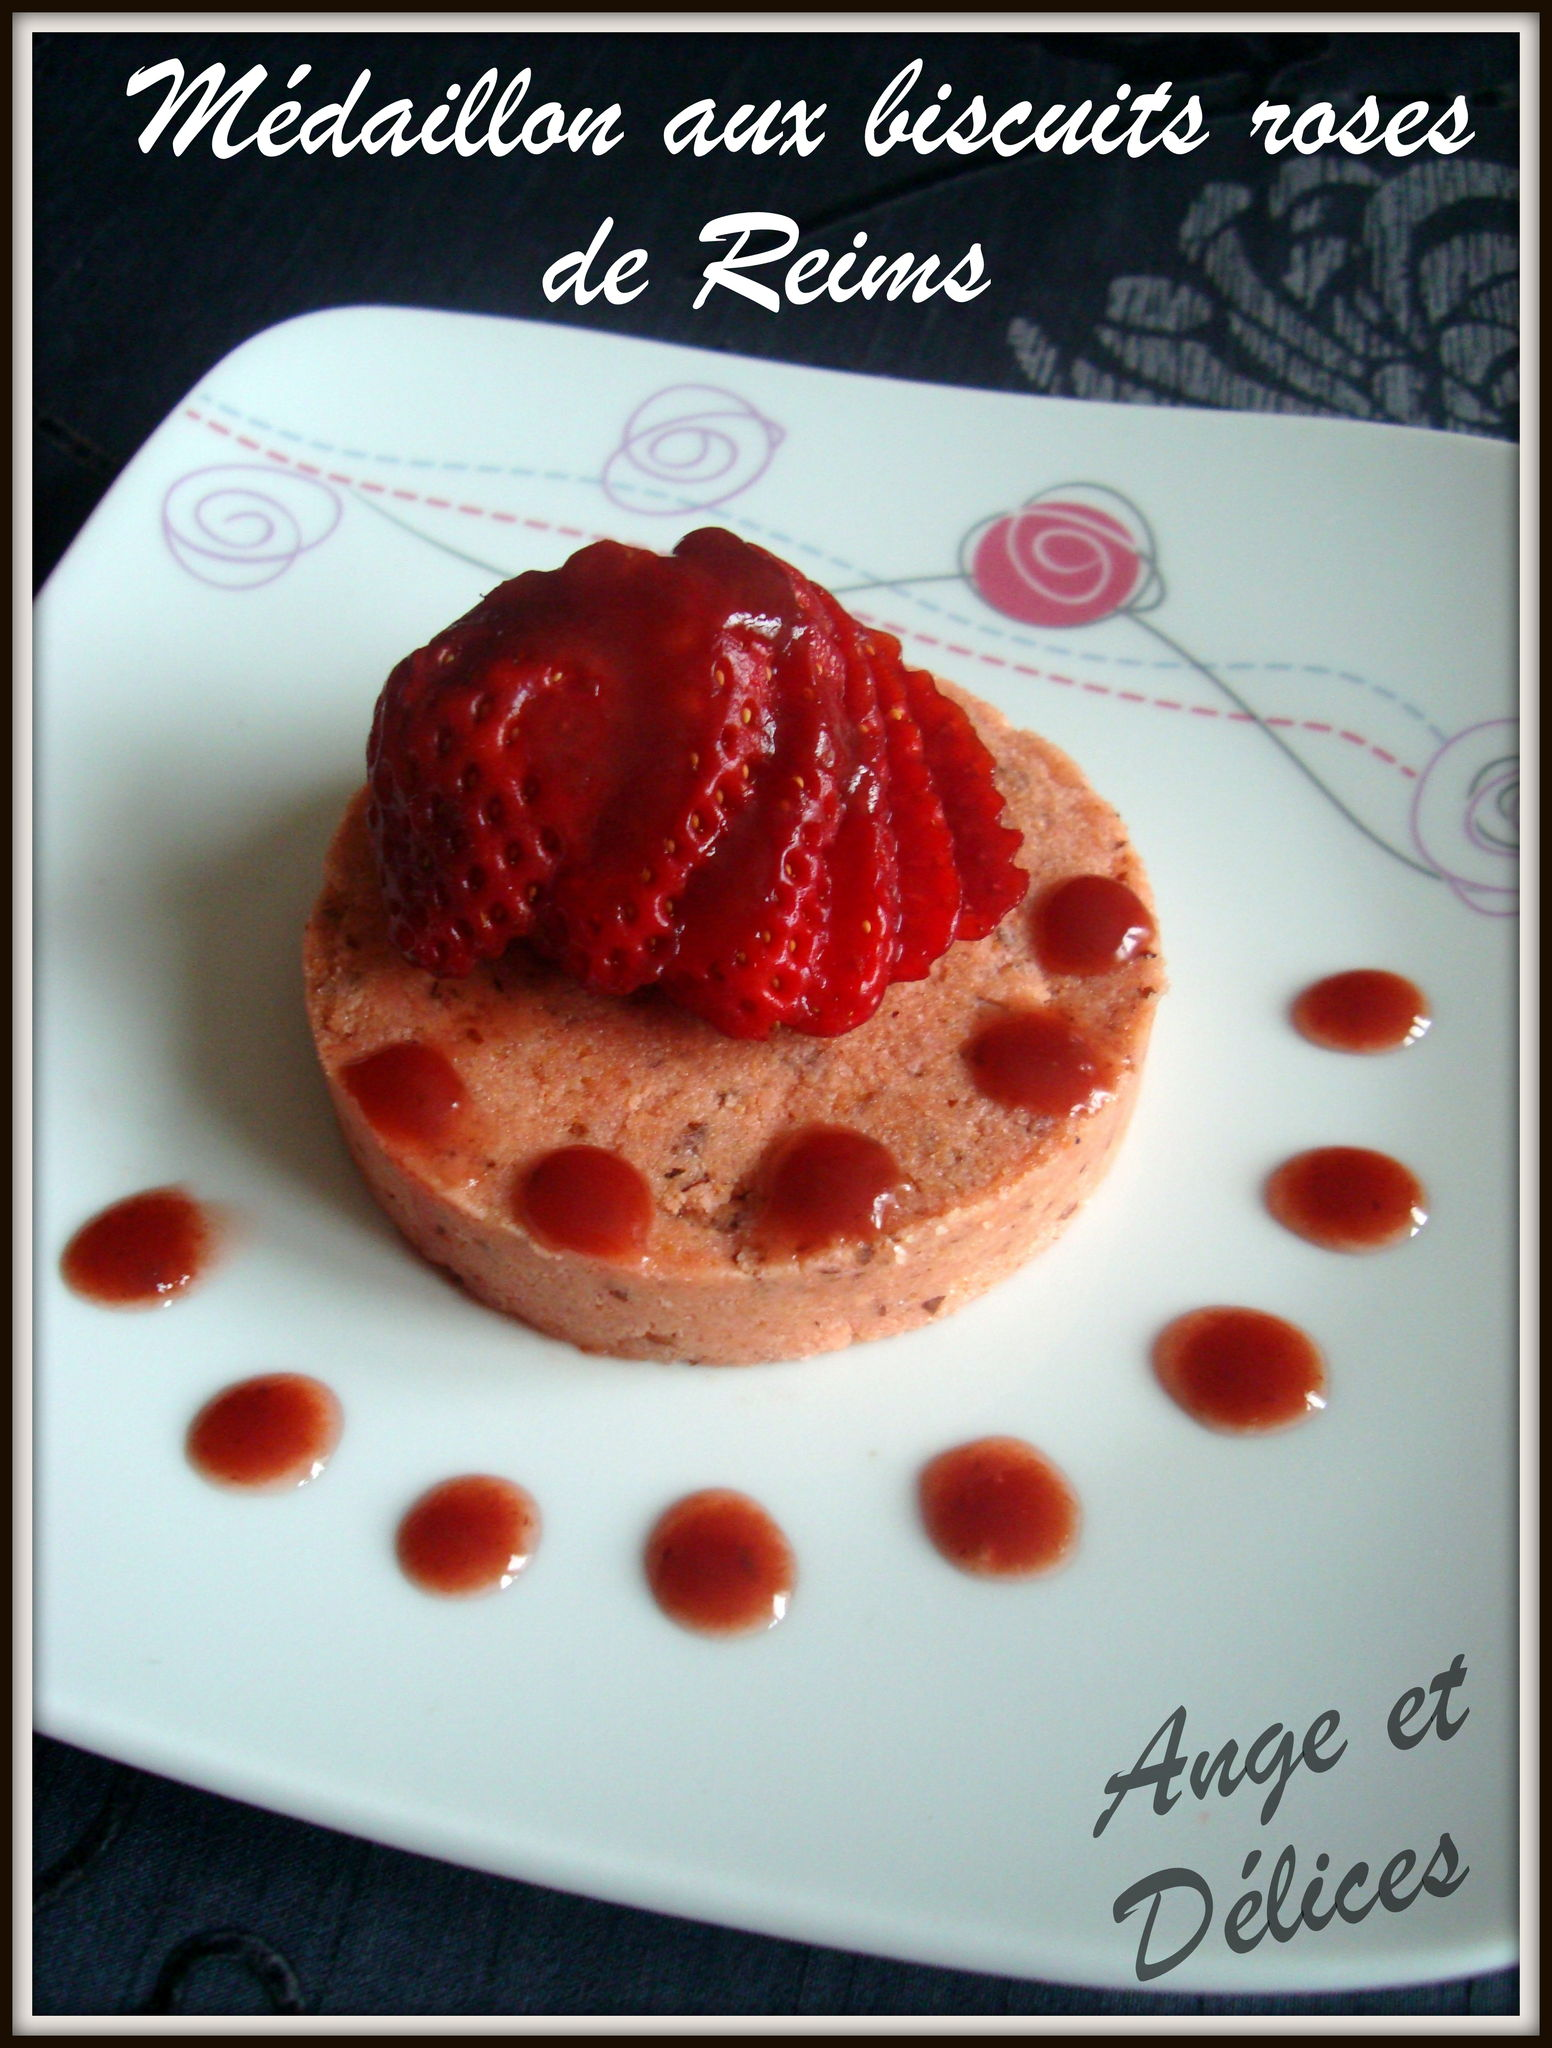 M_daillons_aux_biscuits_roses_de_Reims_00